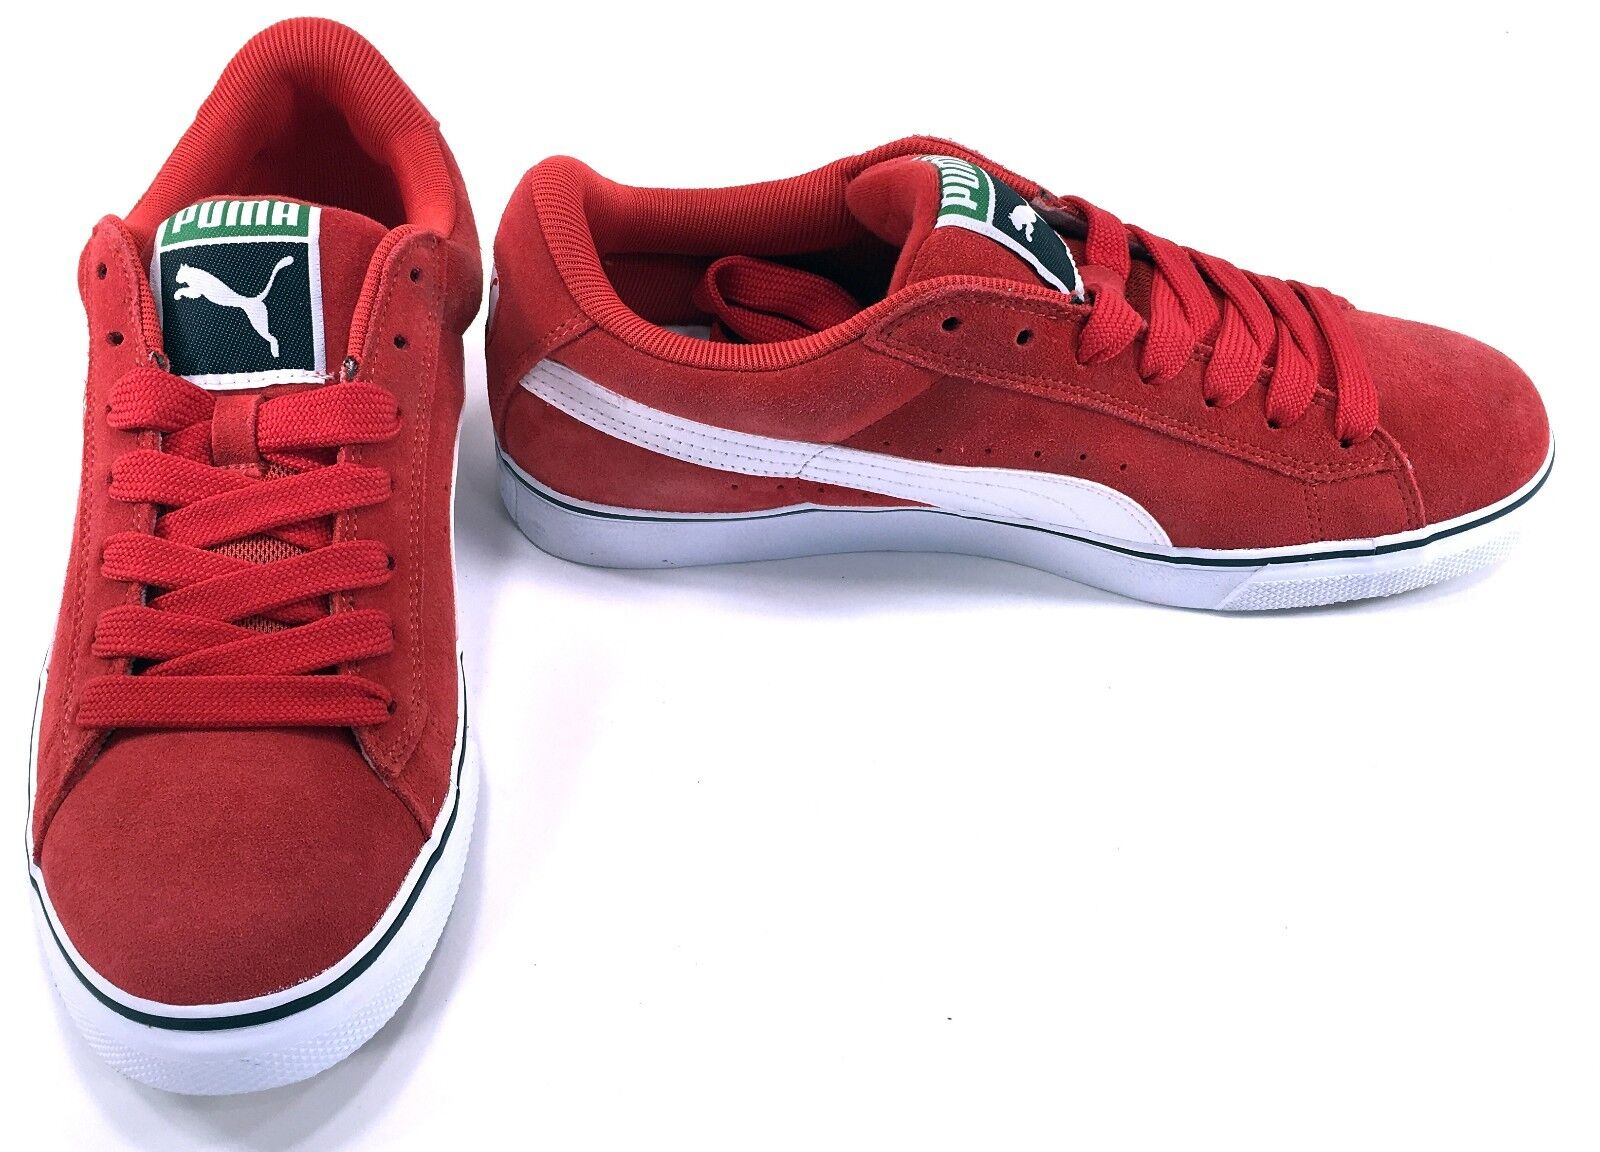 Puma shoes Suede Classic Vulcan Athletic High Risk Red Sneakers Size 8.5